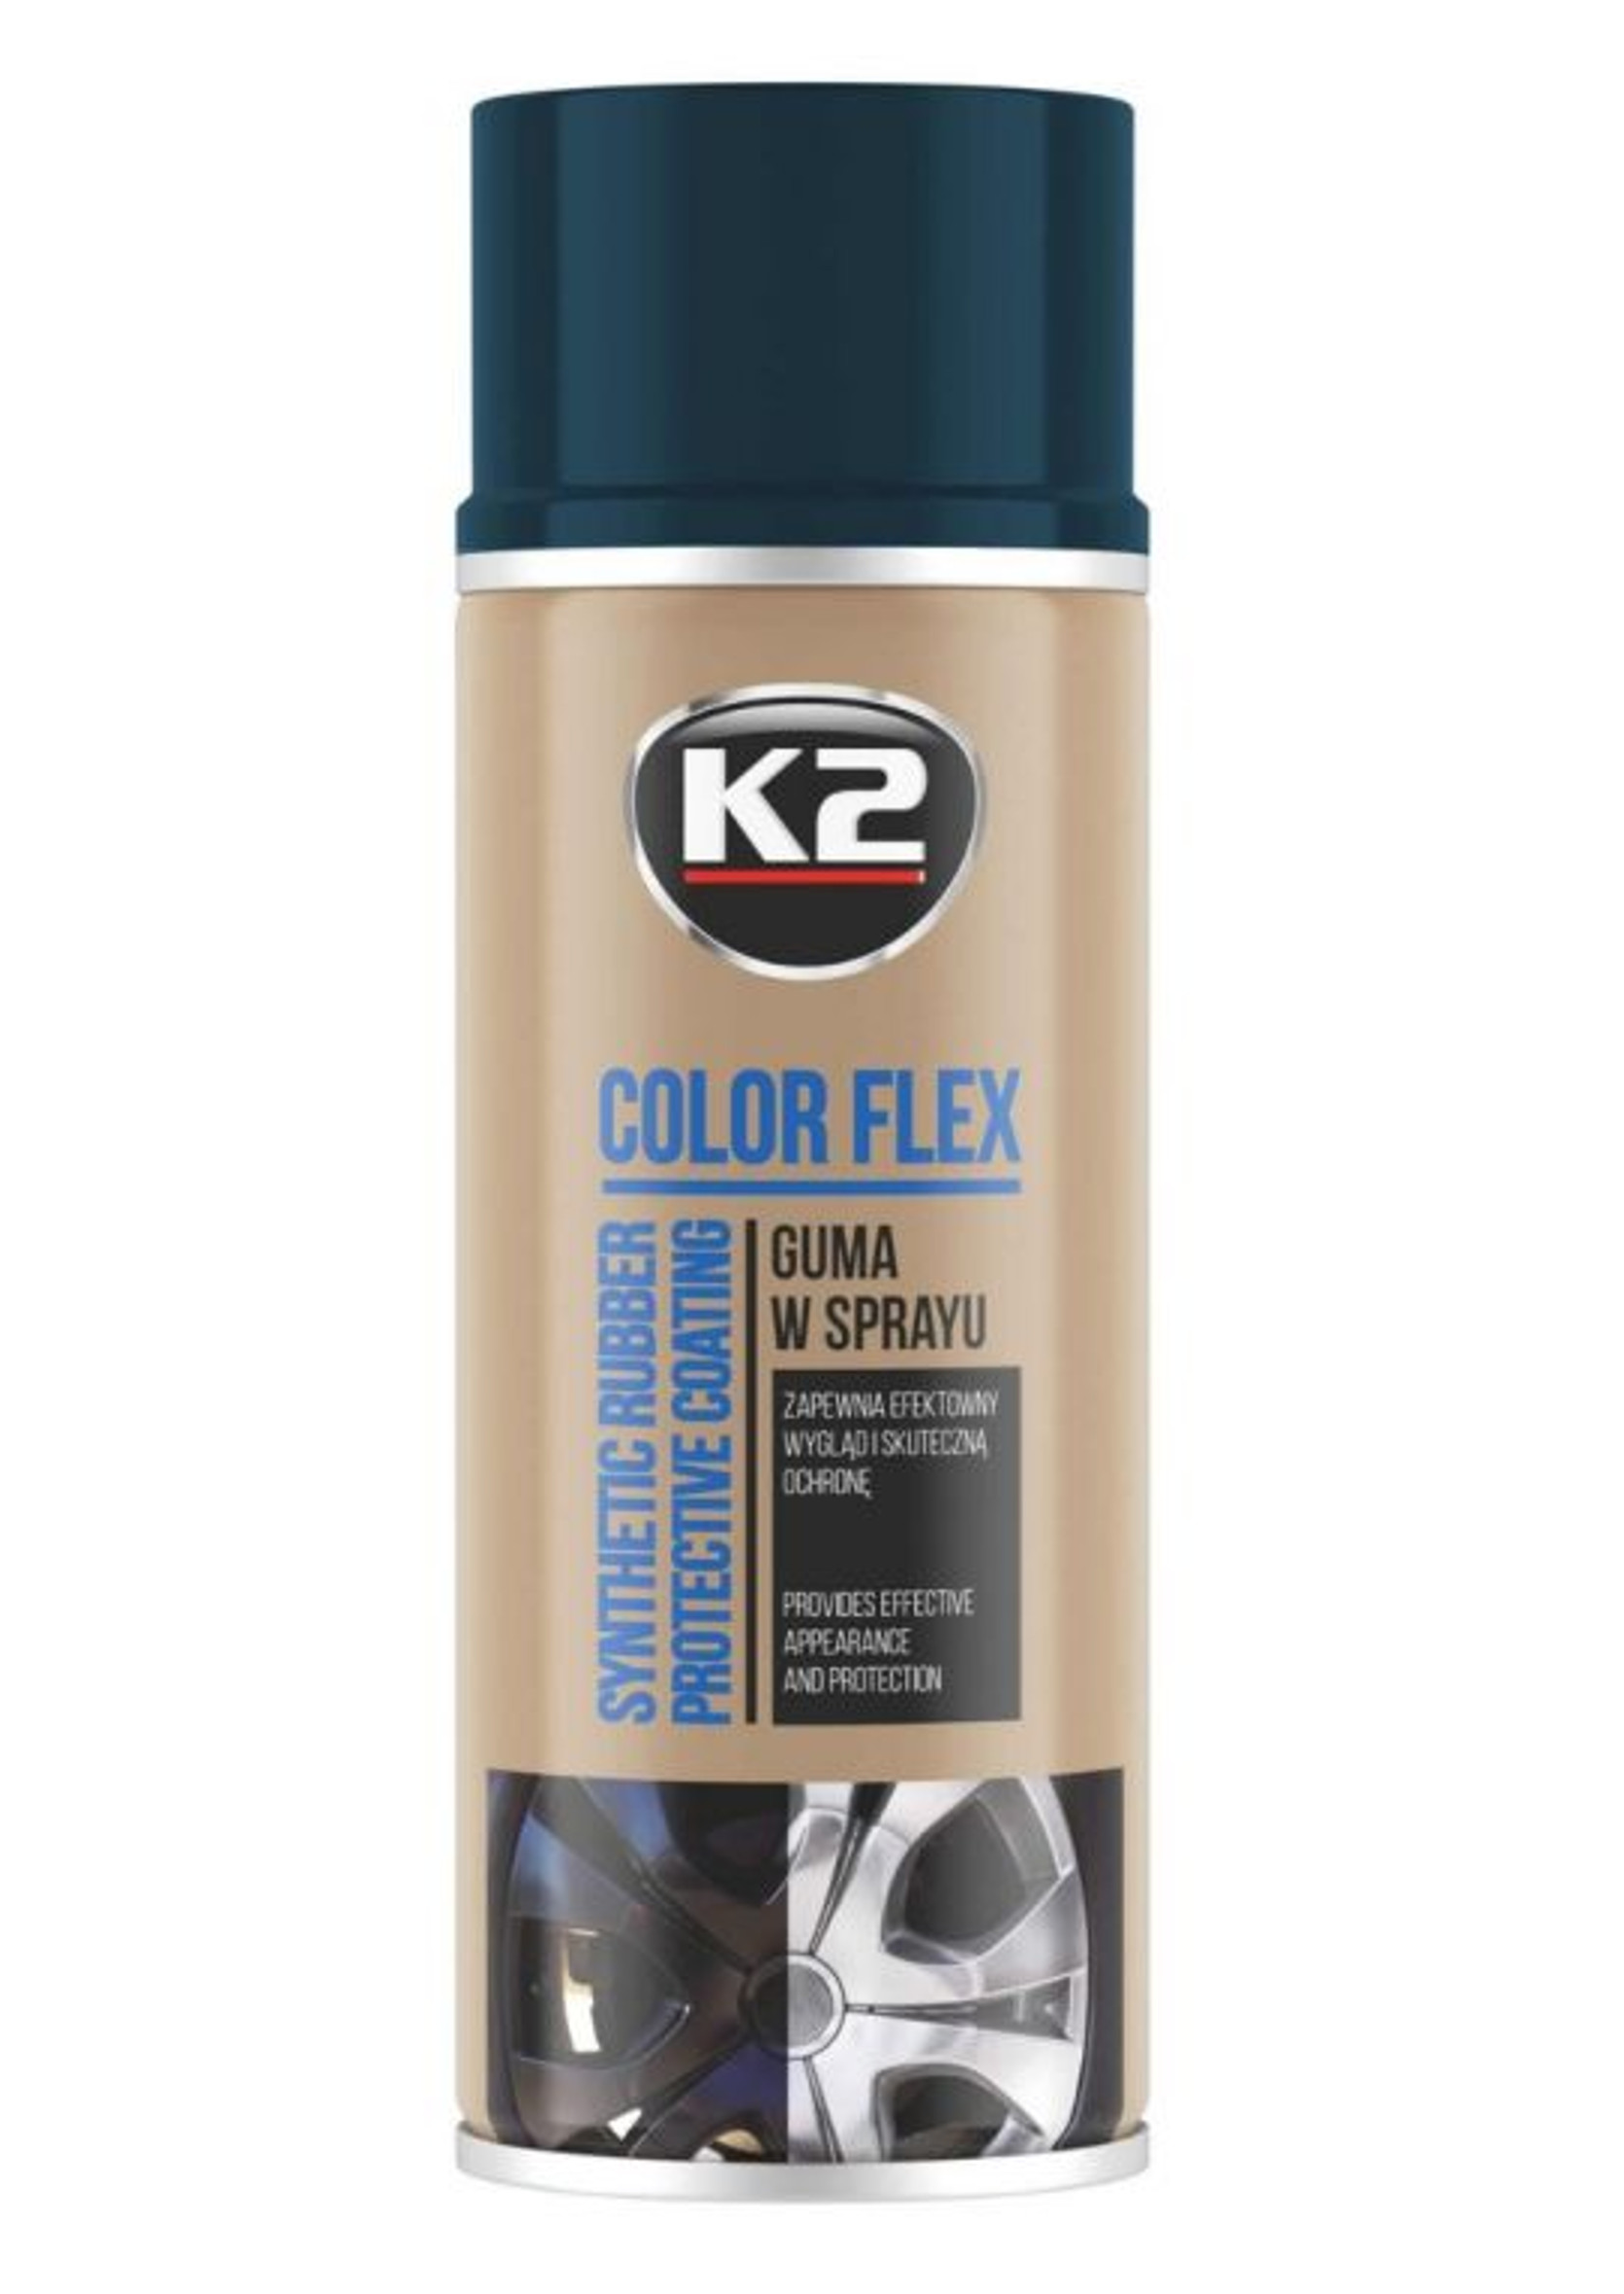 K2 Color Flex Carbon 400ml Guma w Sprayu